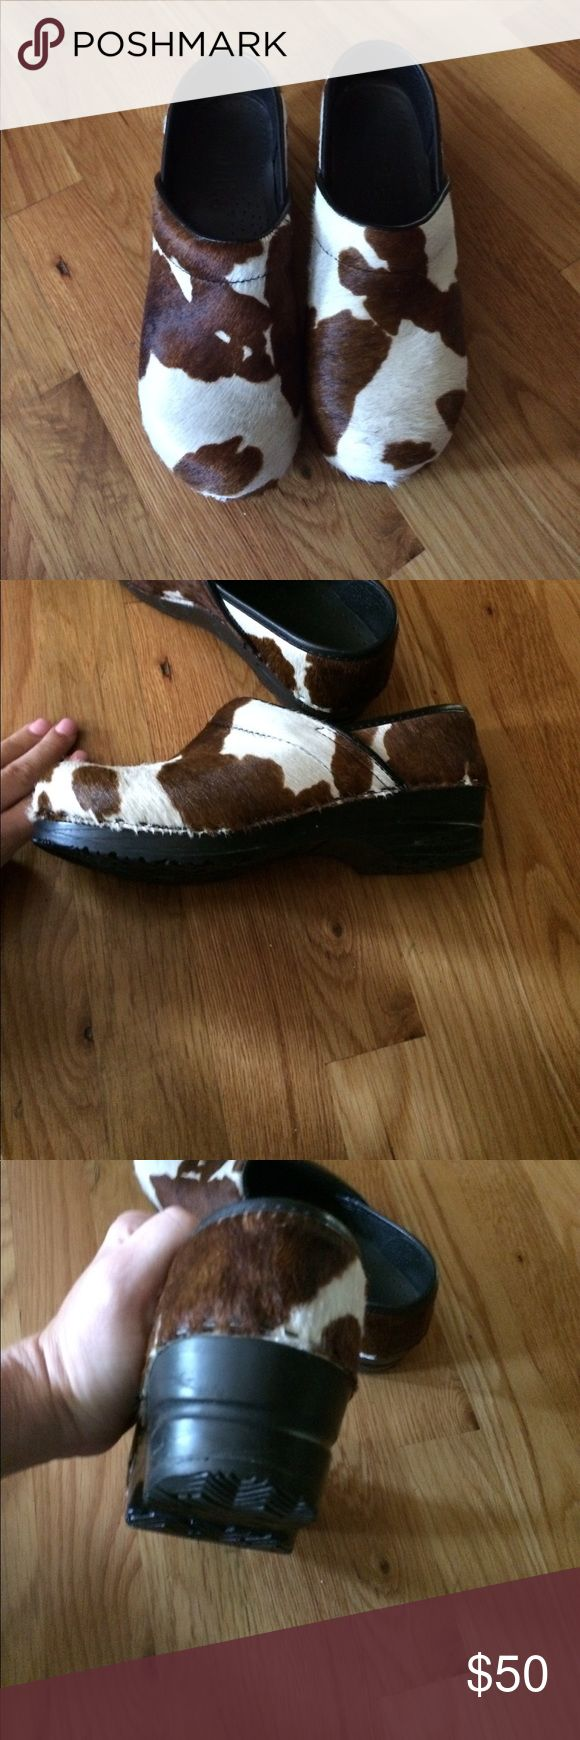 Sanitas Cow print clog. Excellent like new condition. Size 37 Sanita Shoes Mules & Clogs